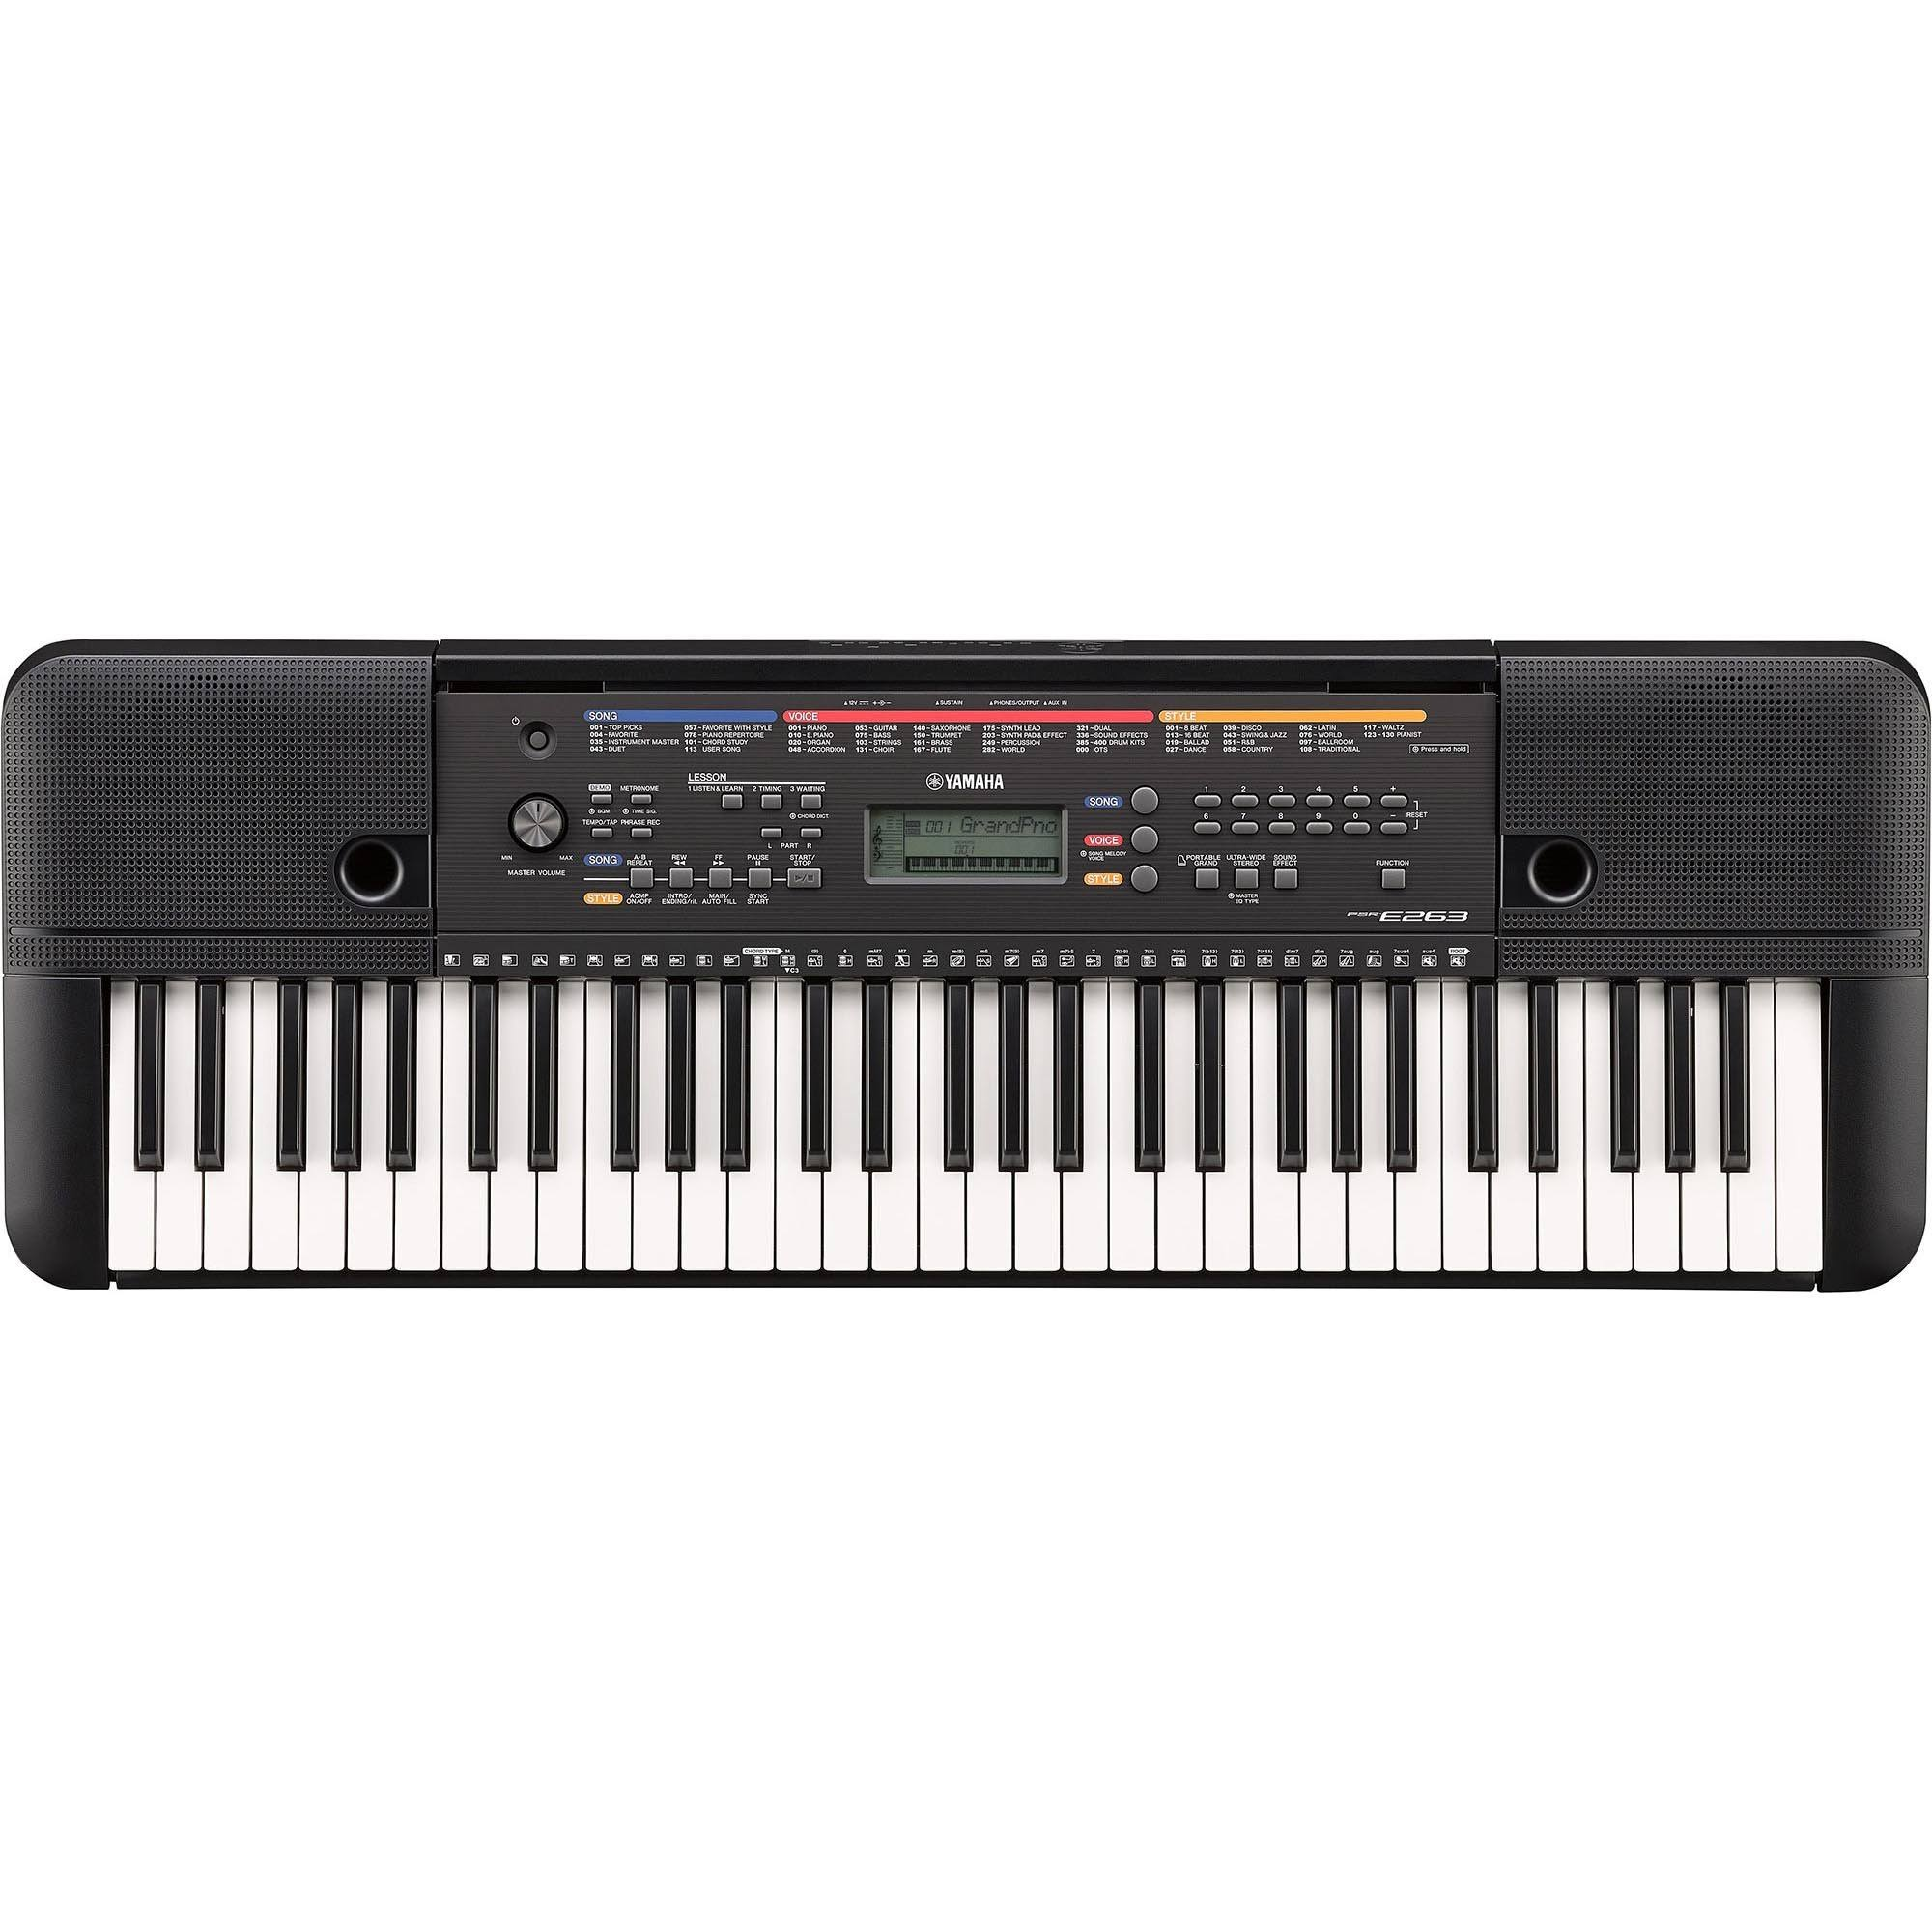 Yamaha Portable Keyboard - Black, 61 Key